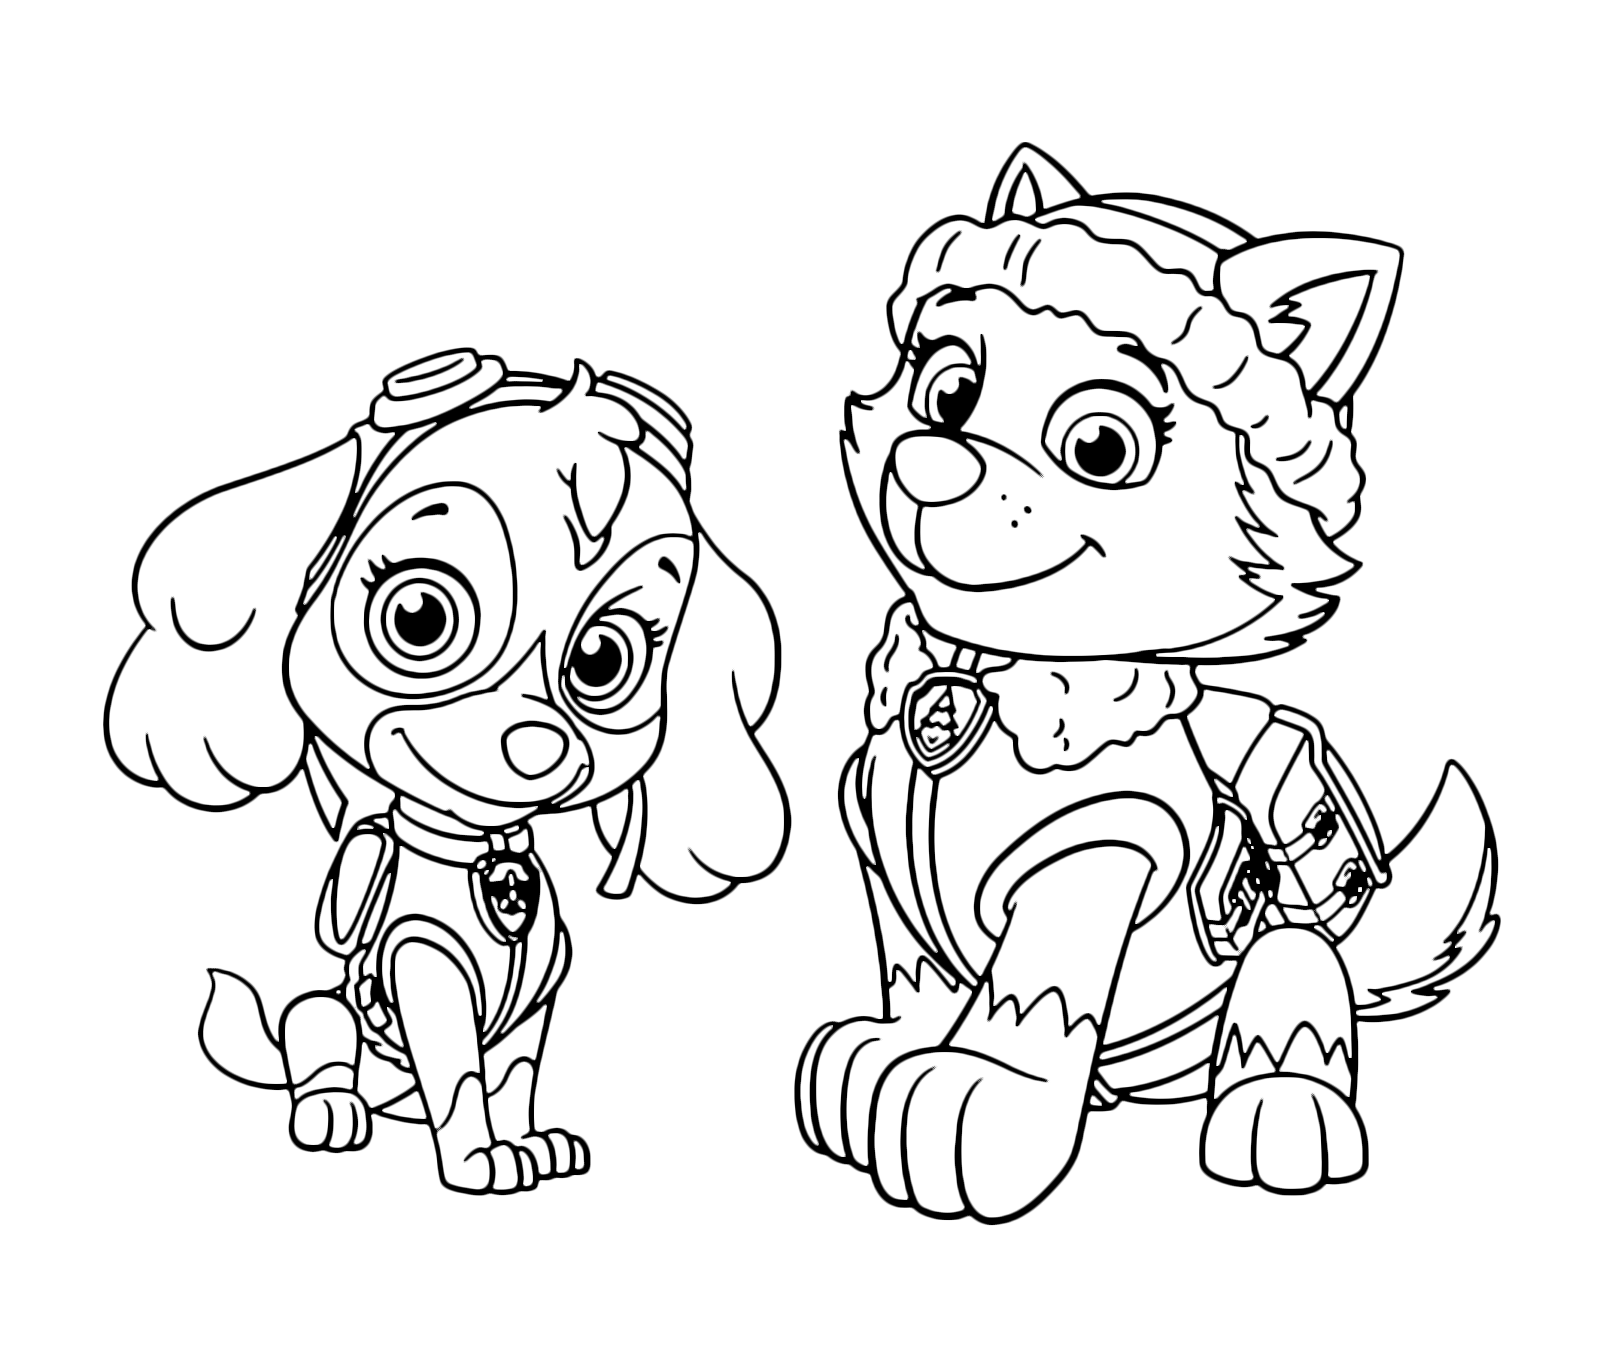 paw patrol vehicles coloring pages 32 paw patrol coloring pages printable pdf print color vehicles pages paw coloring patrol